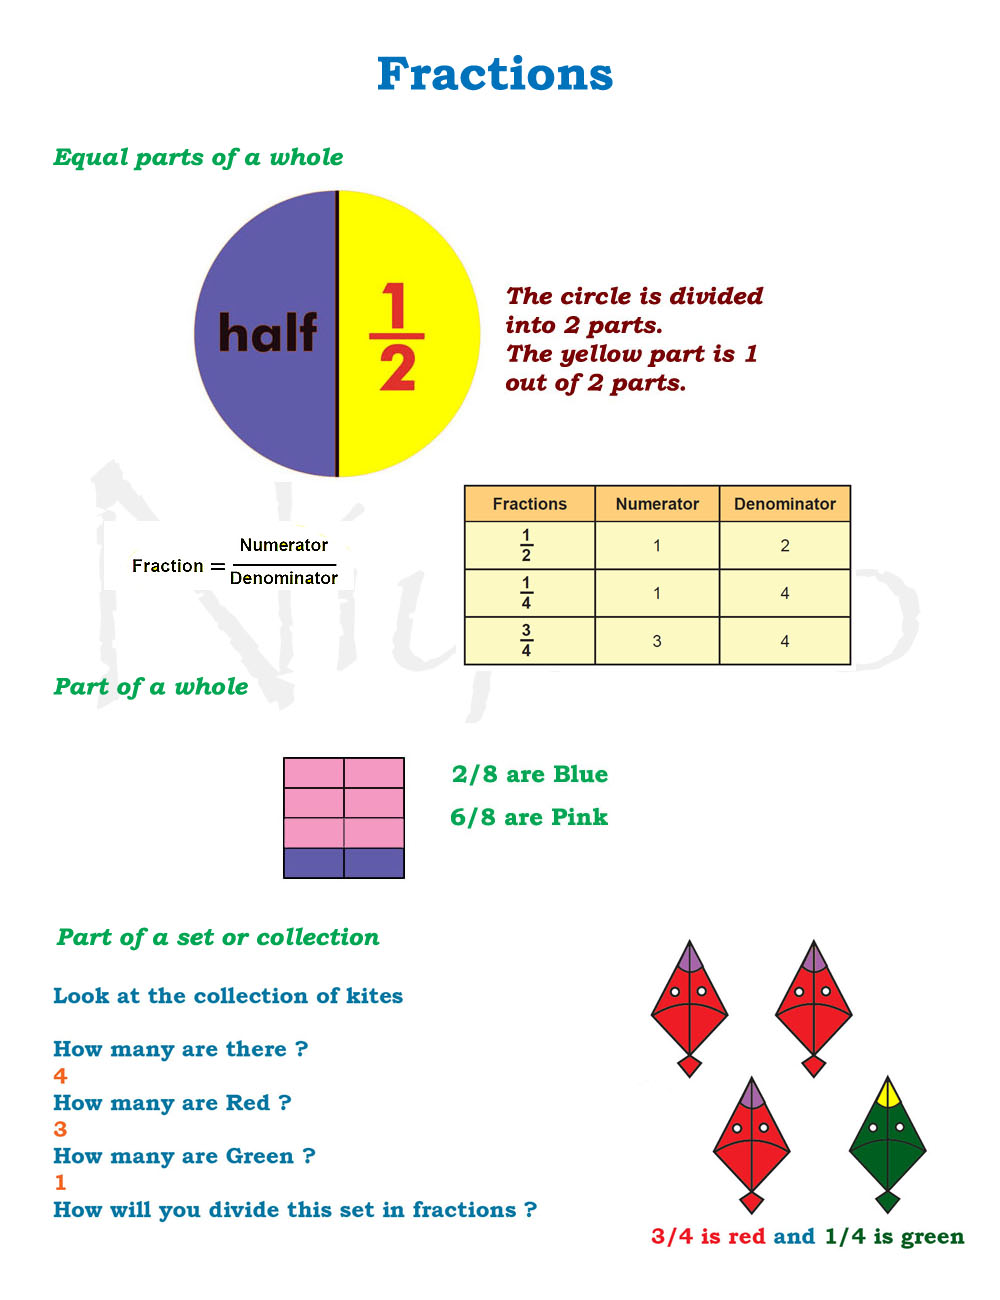 fractions_description